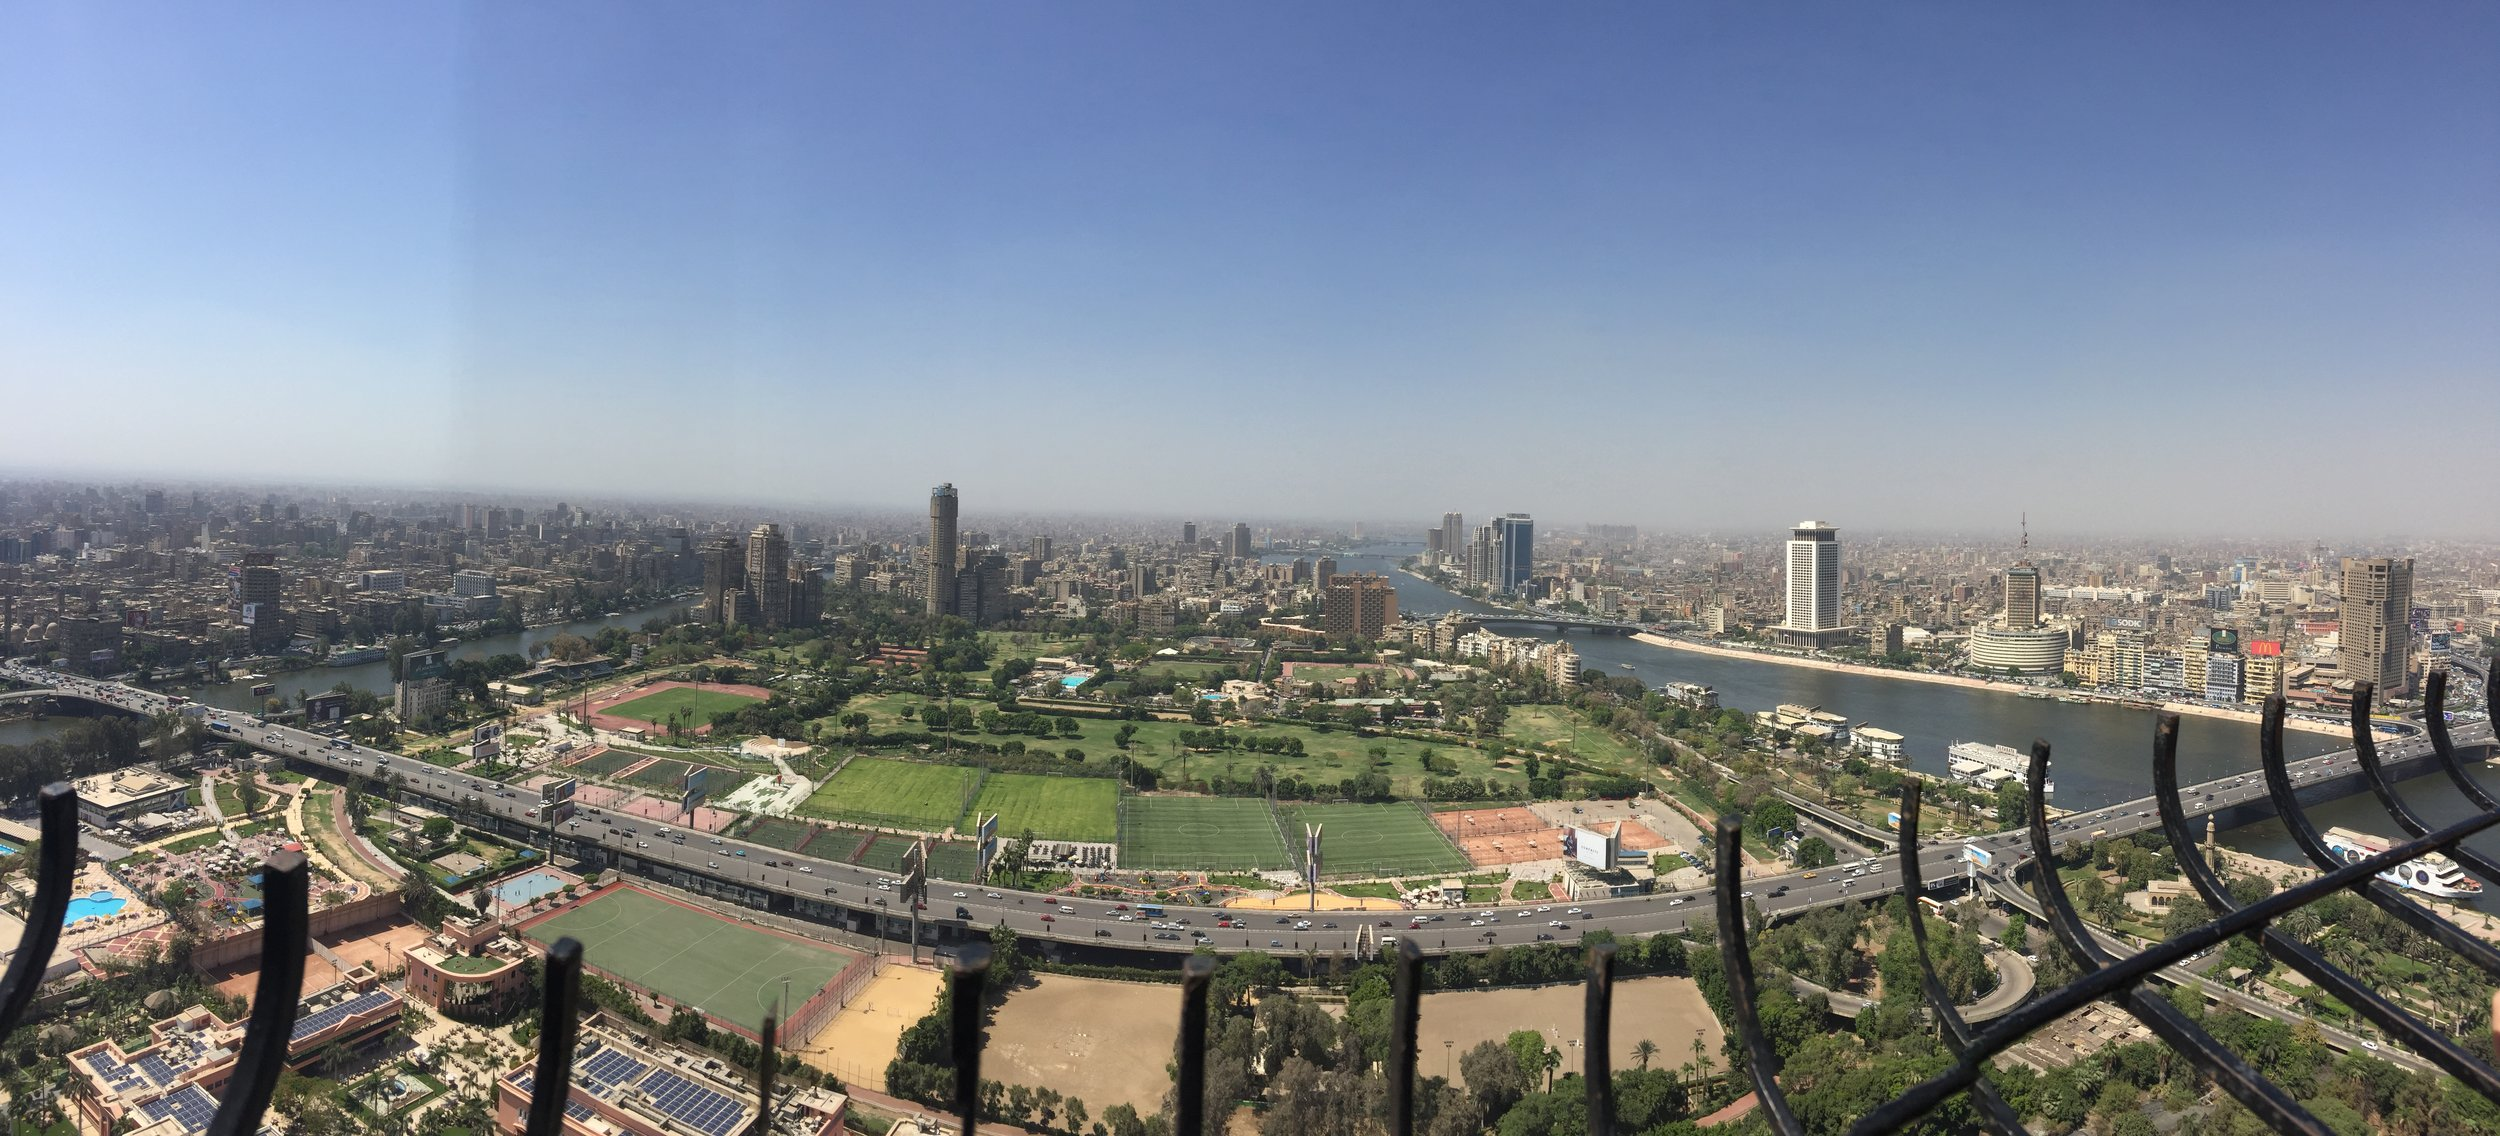 Downtown views from the Cairo Tower. Our hotel, also on Zamalek, is towards the upper-righthand corner of the island. The Al Gazira club's soccer fields sit directly below the tower. (p/c for the better photos goes to Paloma Clohessey)